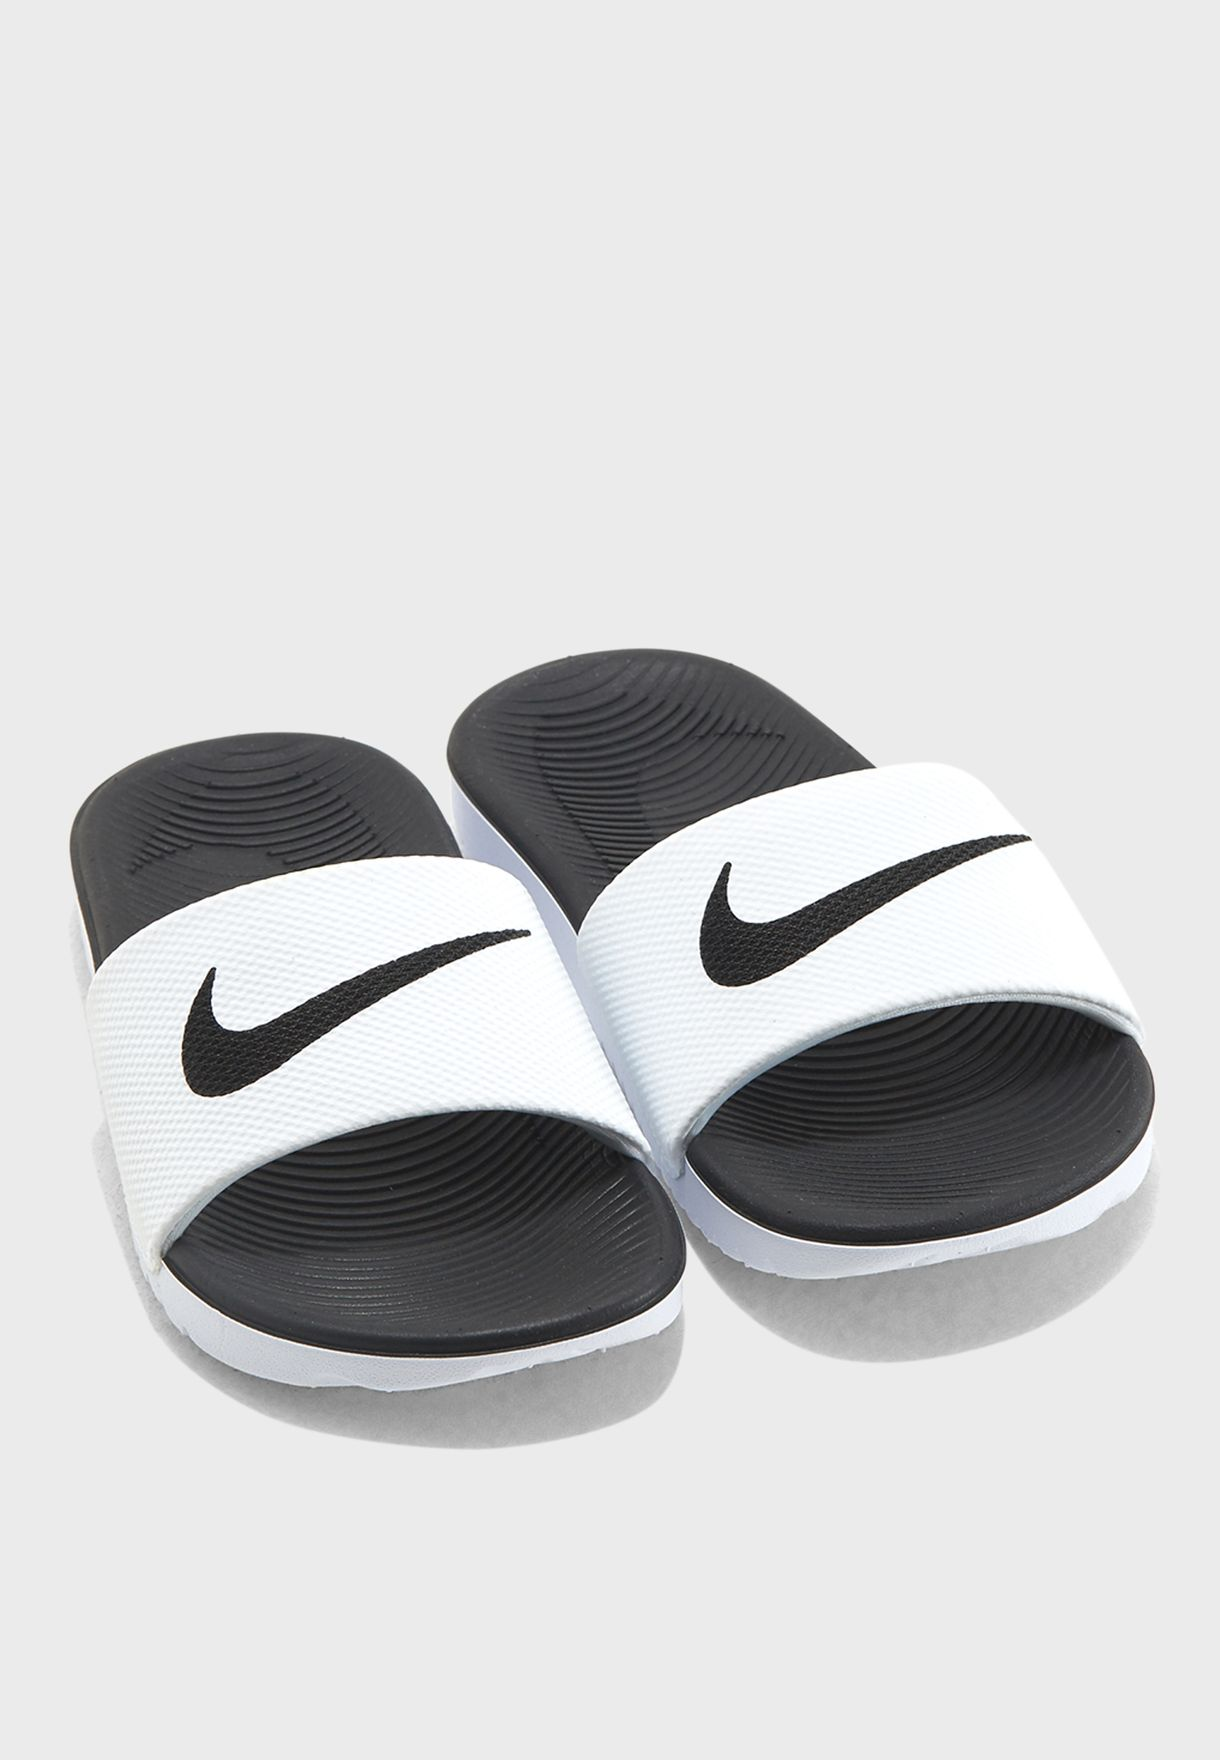 800bdb0a1 Shop Nike white Kids Kawa Slide 819352-100 for Kids in UAE ...